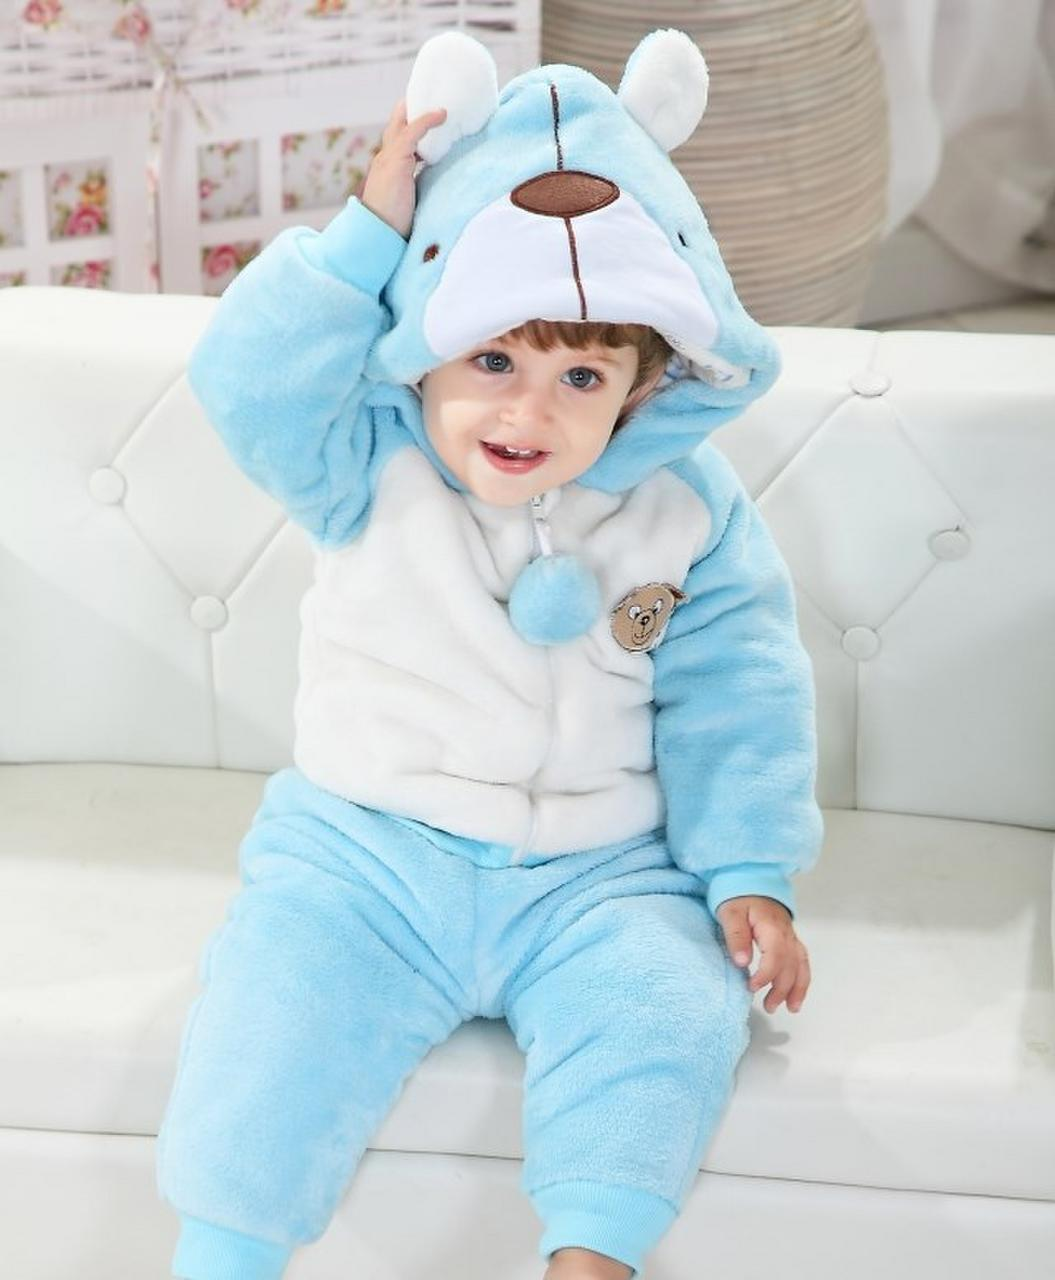 Cute Beer Winter Type Animal Baby Hooded Unisex Playsuits Romper Toddlers jumpsuit,Christmas Baby,funny baby onesies,cute baby onesie,1st Birthday Owl Bodysuit